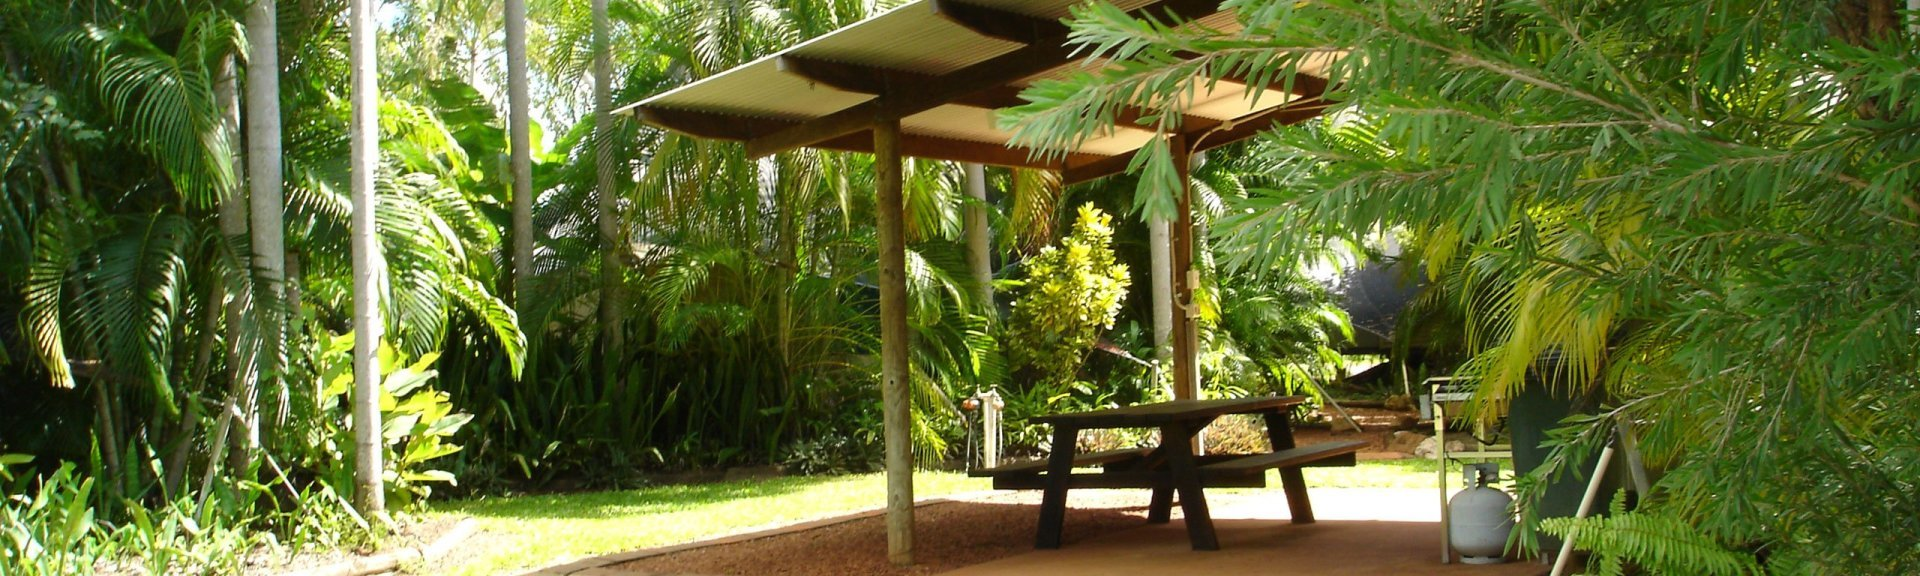 A shady picnic spot at Anbinik Resort. Photo by Anbinik Resort